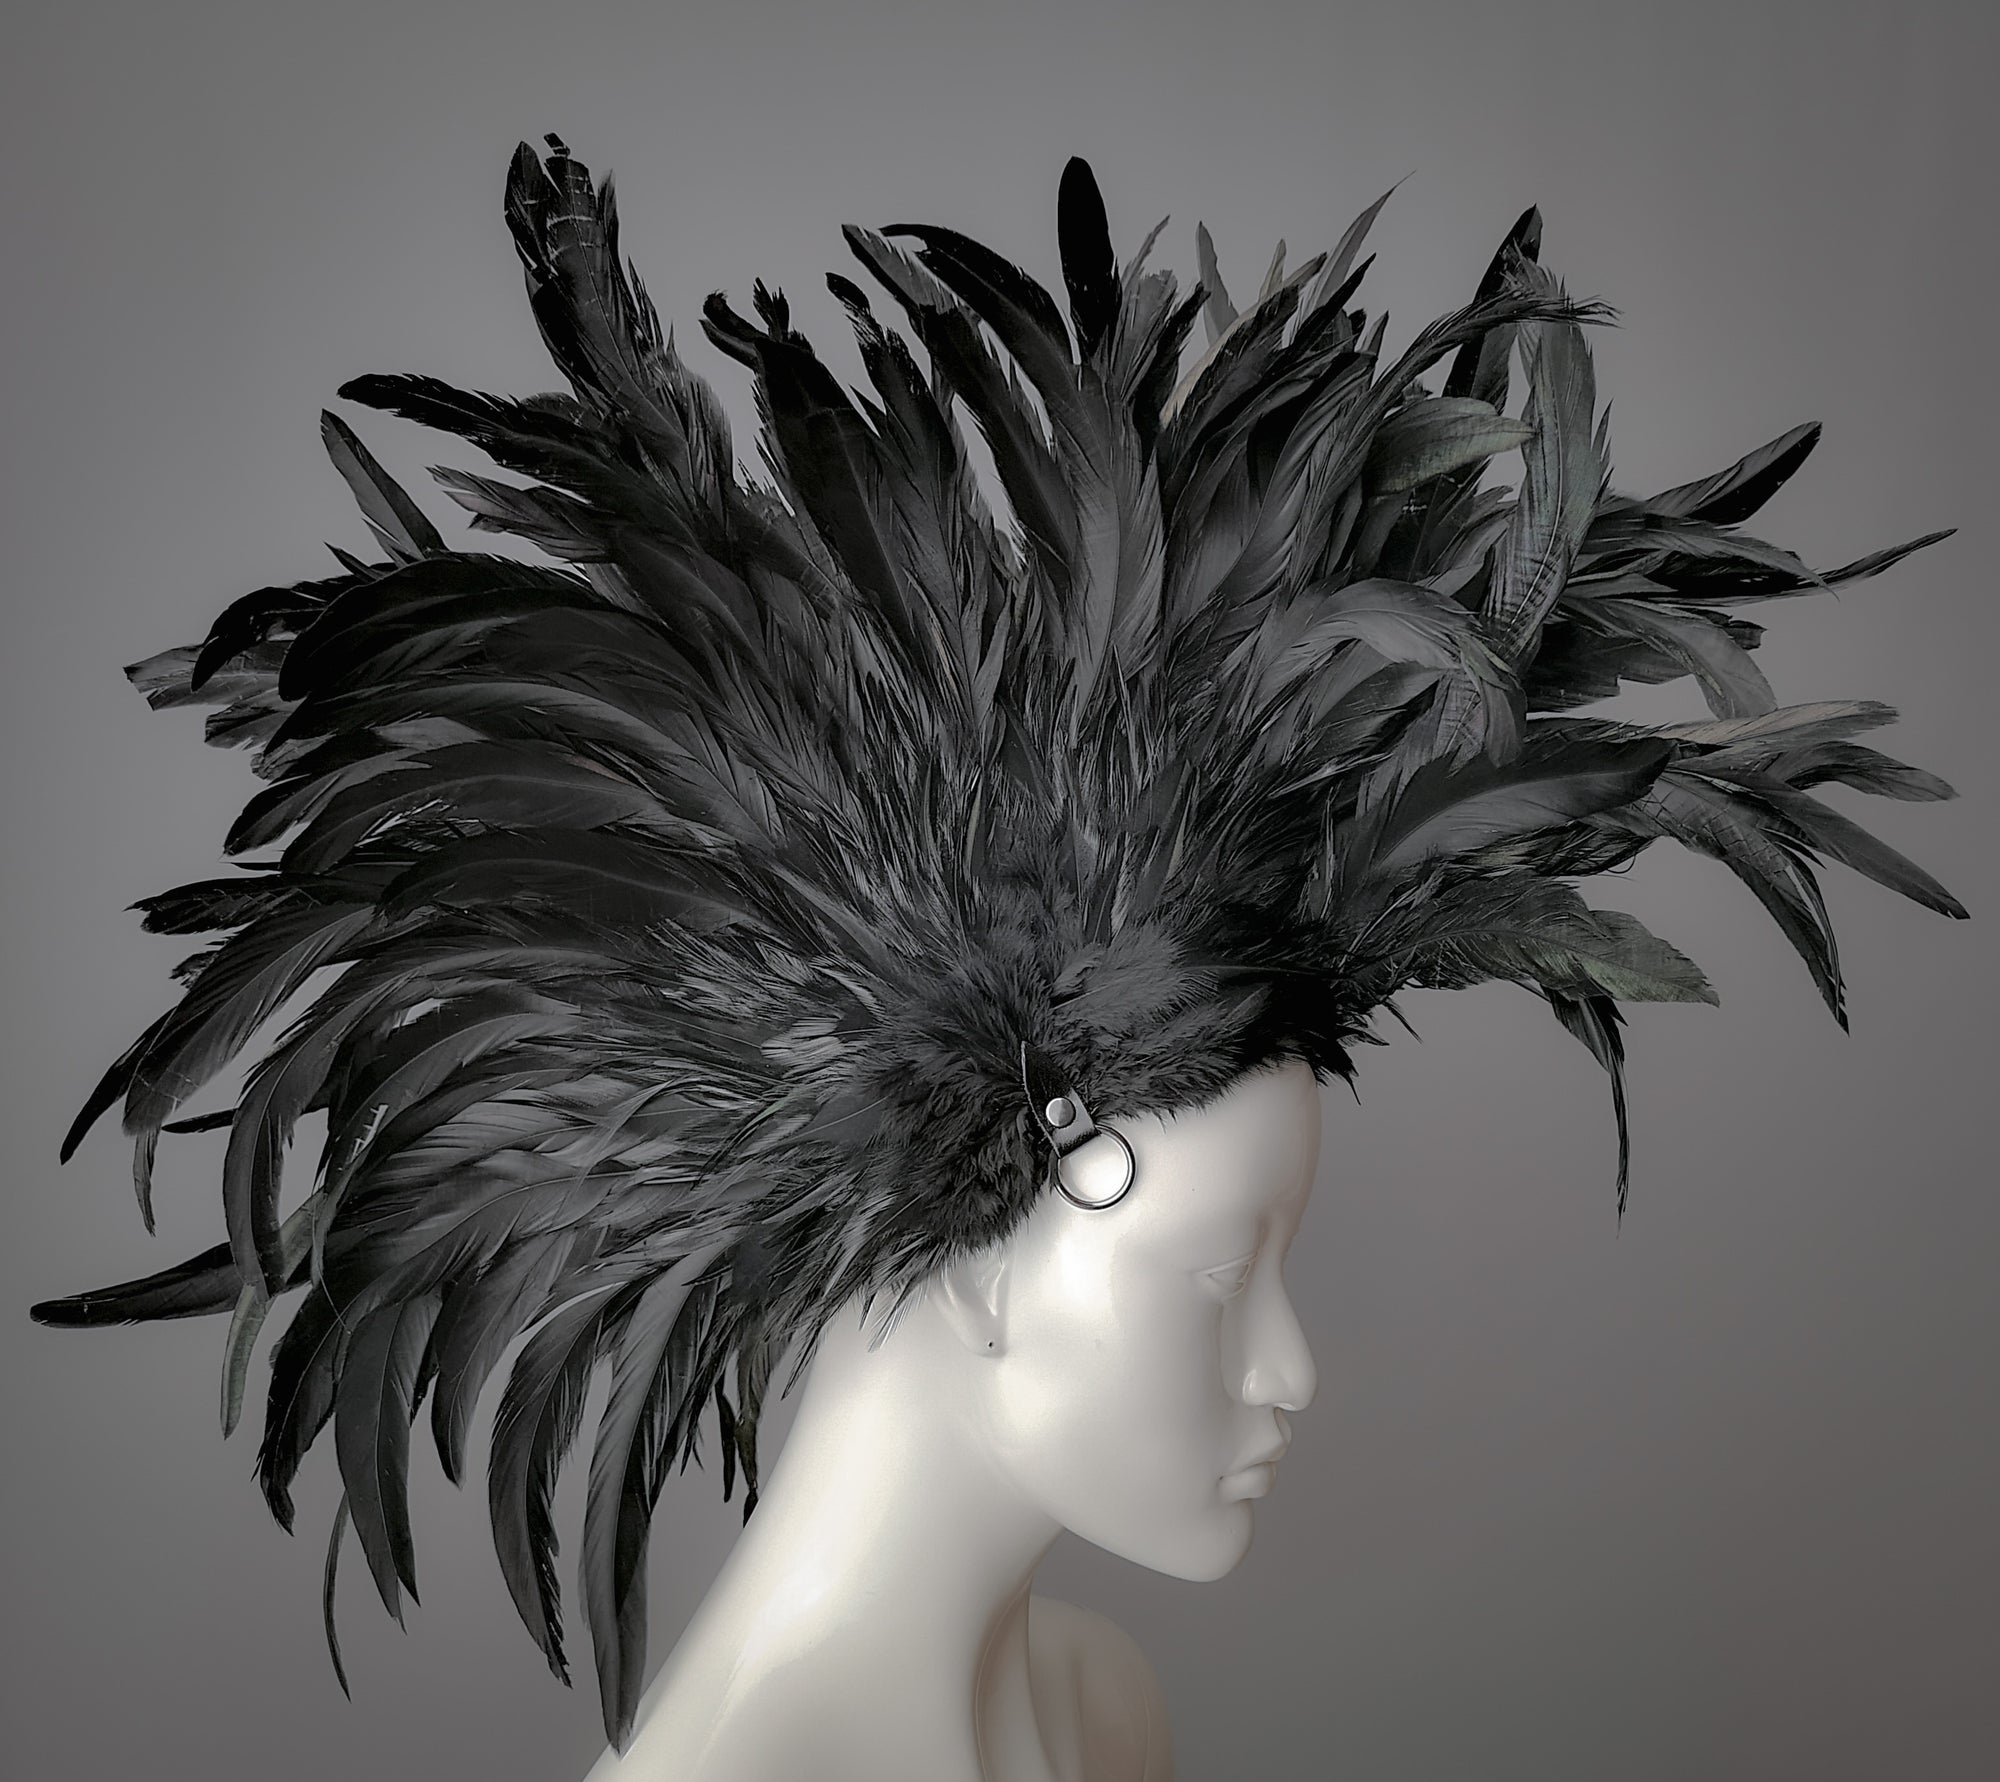 Punk headdress / Black feather Mohawk style headdress with gunmetal o rings / Rooster feather wasteland mohawk  / bdsm feather mohawk / Mad Max headdress /  Crow headdress / Bird costume headdress / Feather art wig